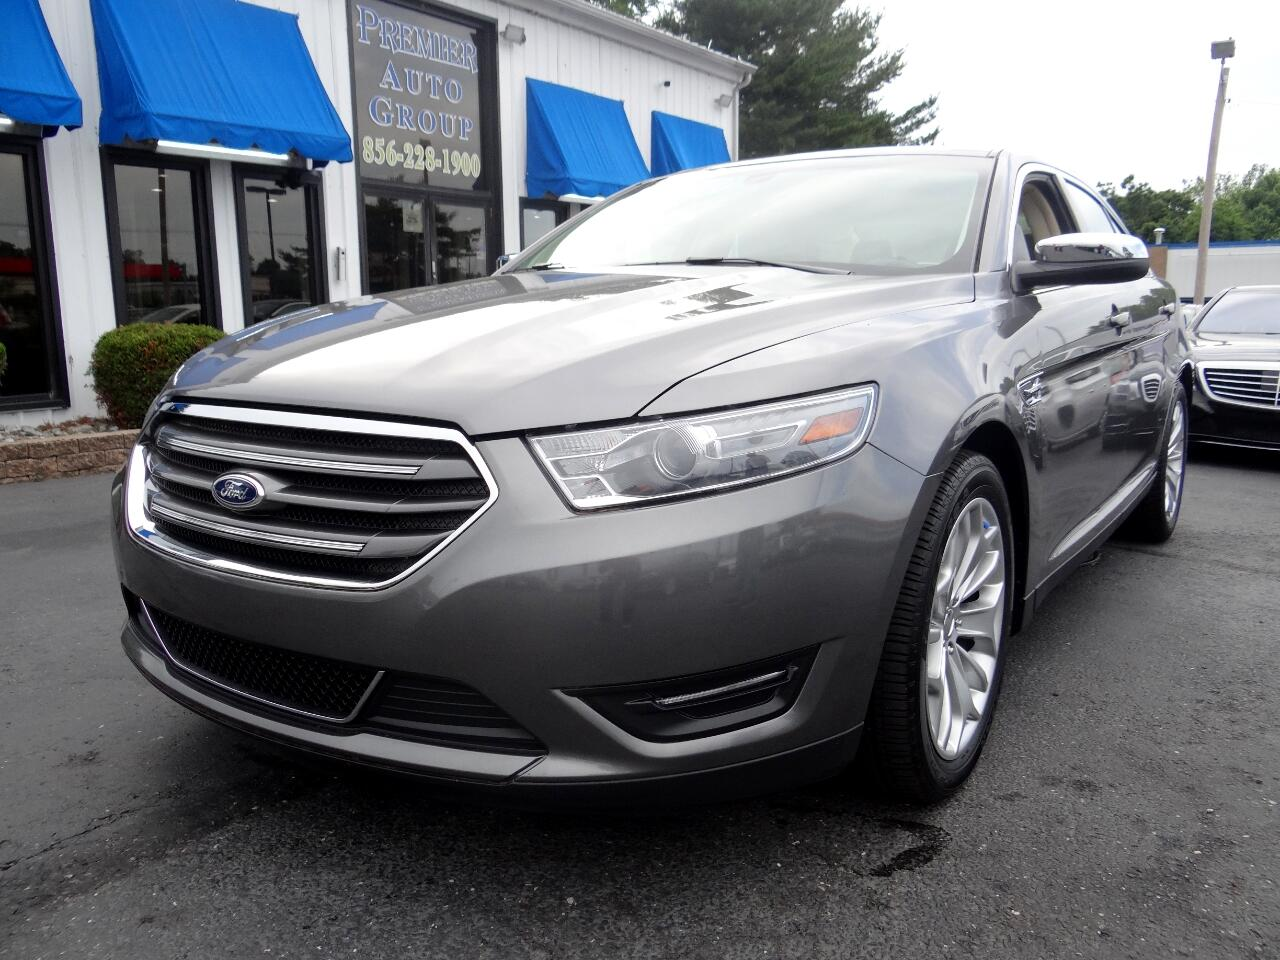 2014 Ford Taurus 4dr Sdn Limited FWD